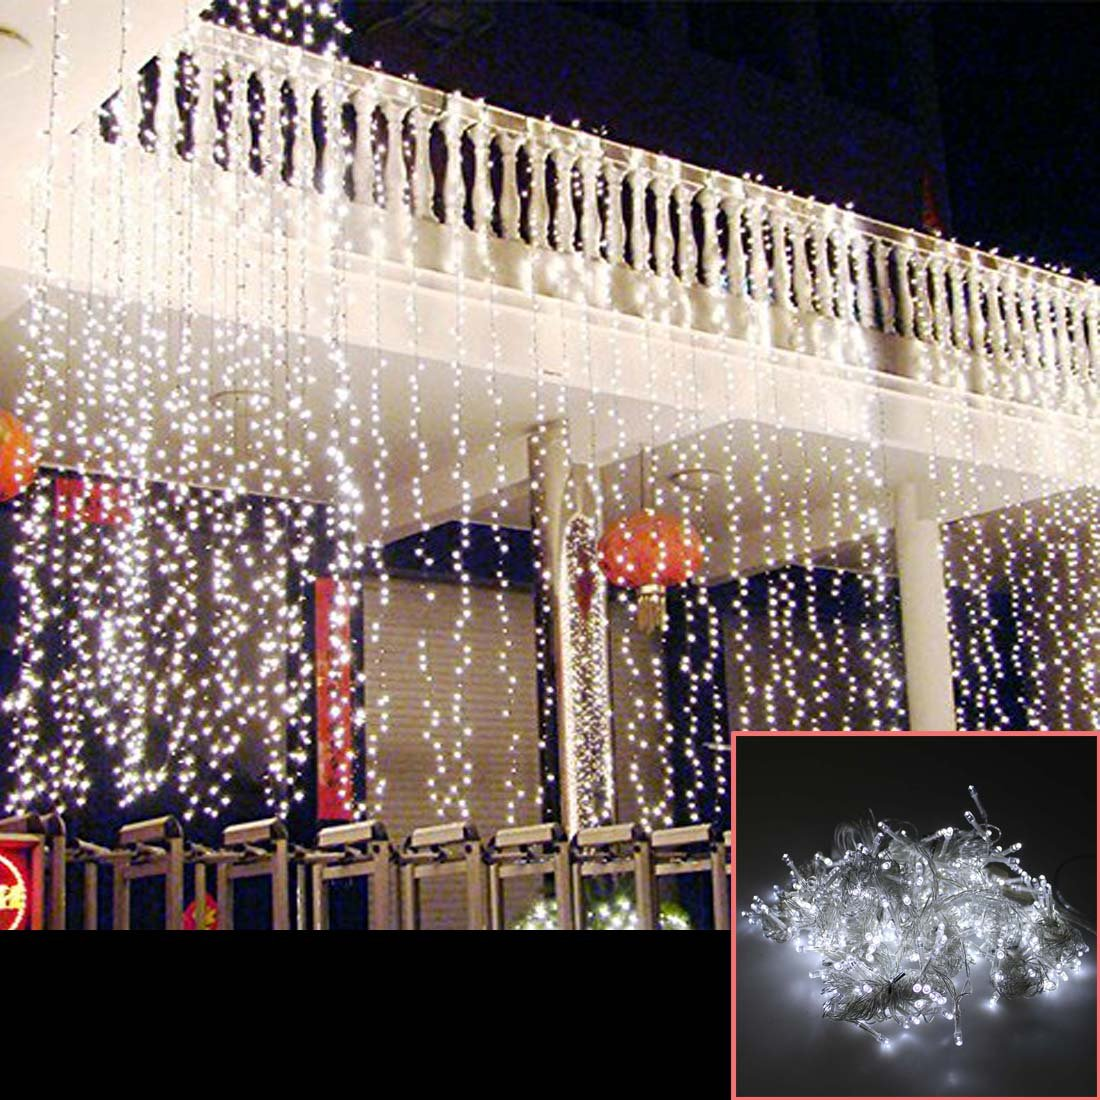 AGPtek® 15Mx3M 1664LED Linkable Fairy Curtain Lights Strings Connectable Lights 8 Lighting Modes for Wedding Ceremony Christmas Party Home Decoration Holiday Celebration-White